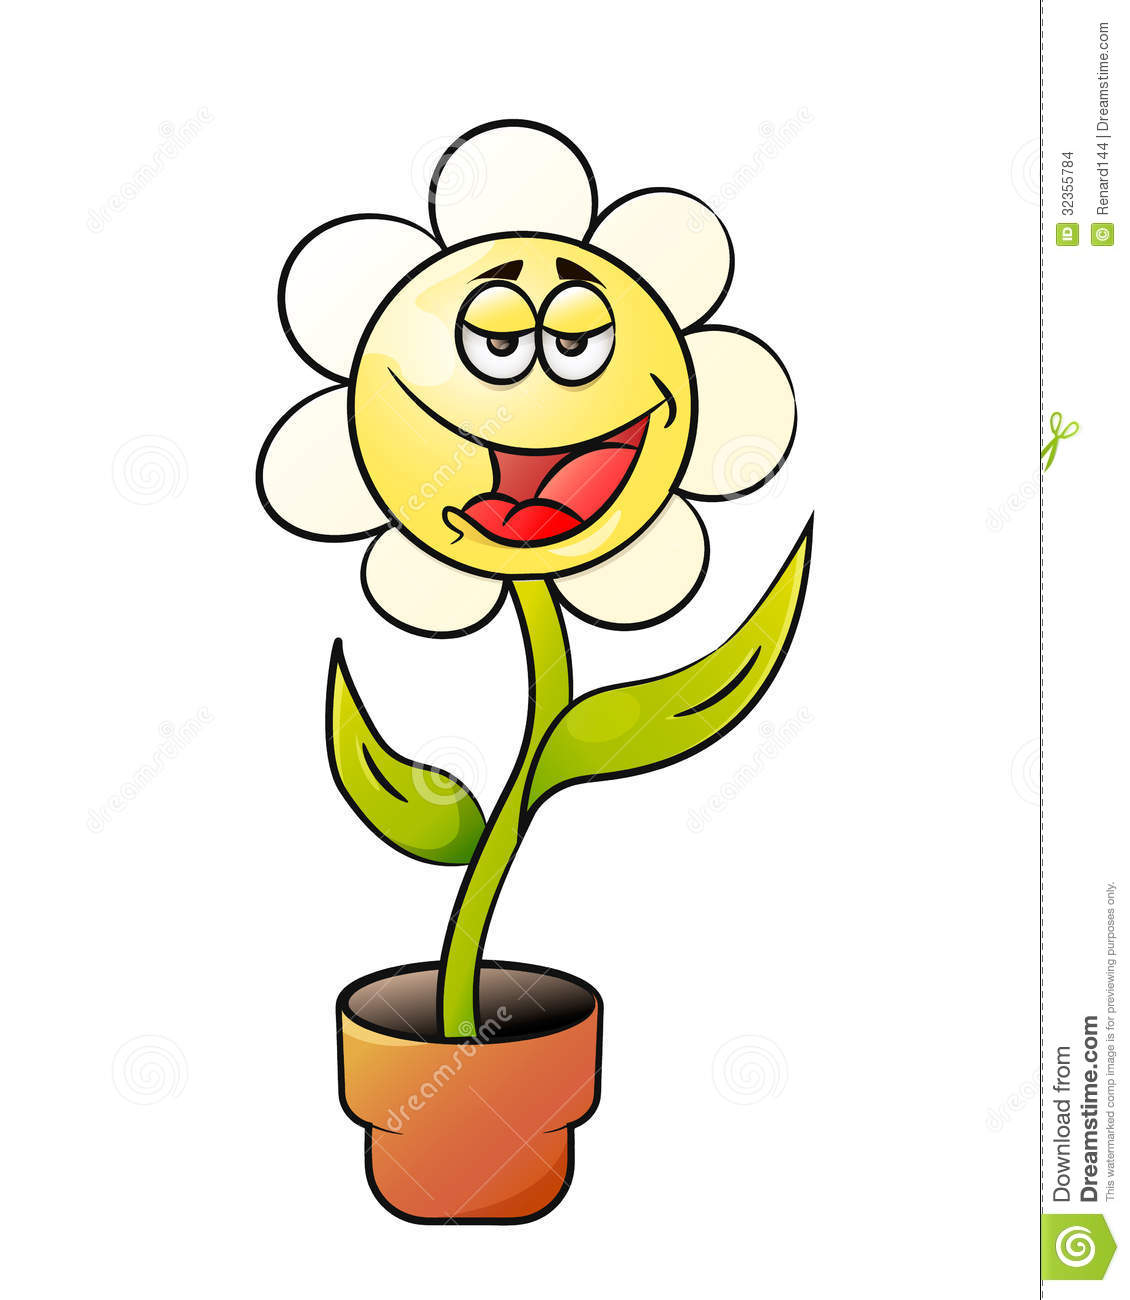 Cartoon Flower In A Pot Stock Images - Image: 32355784